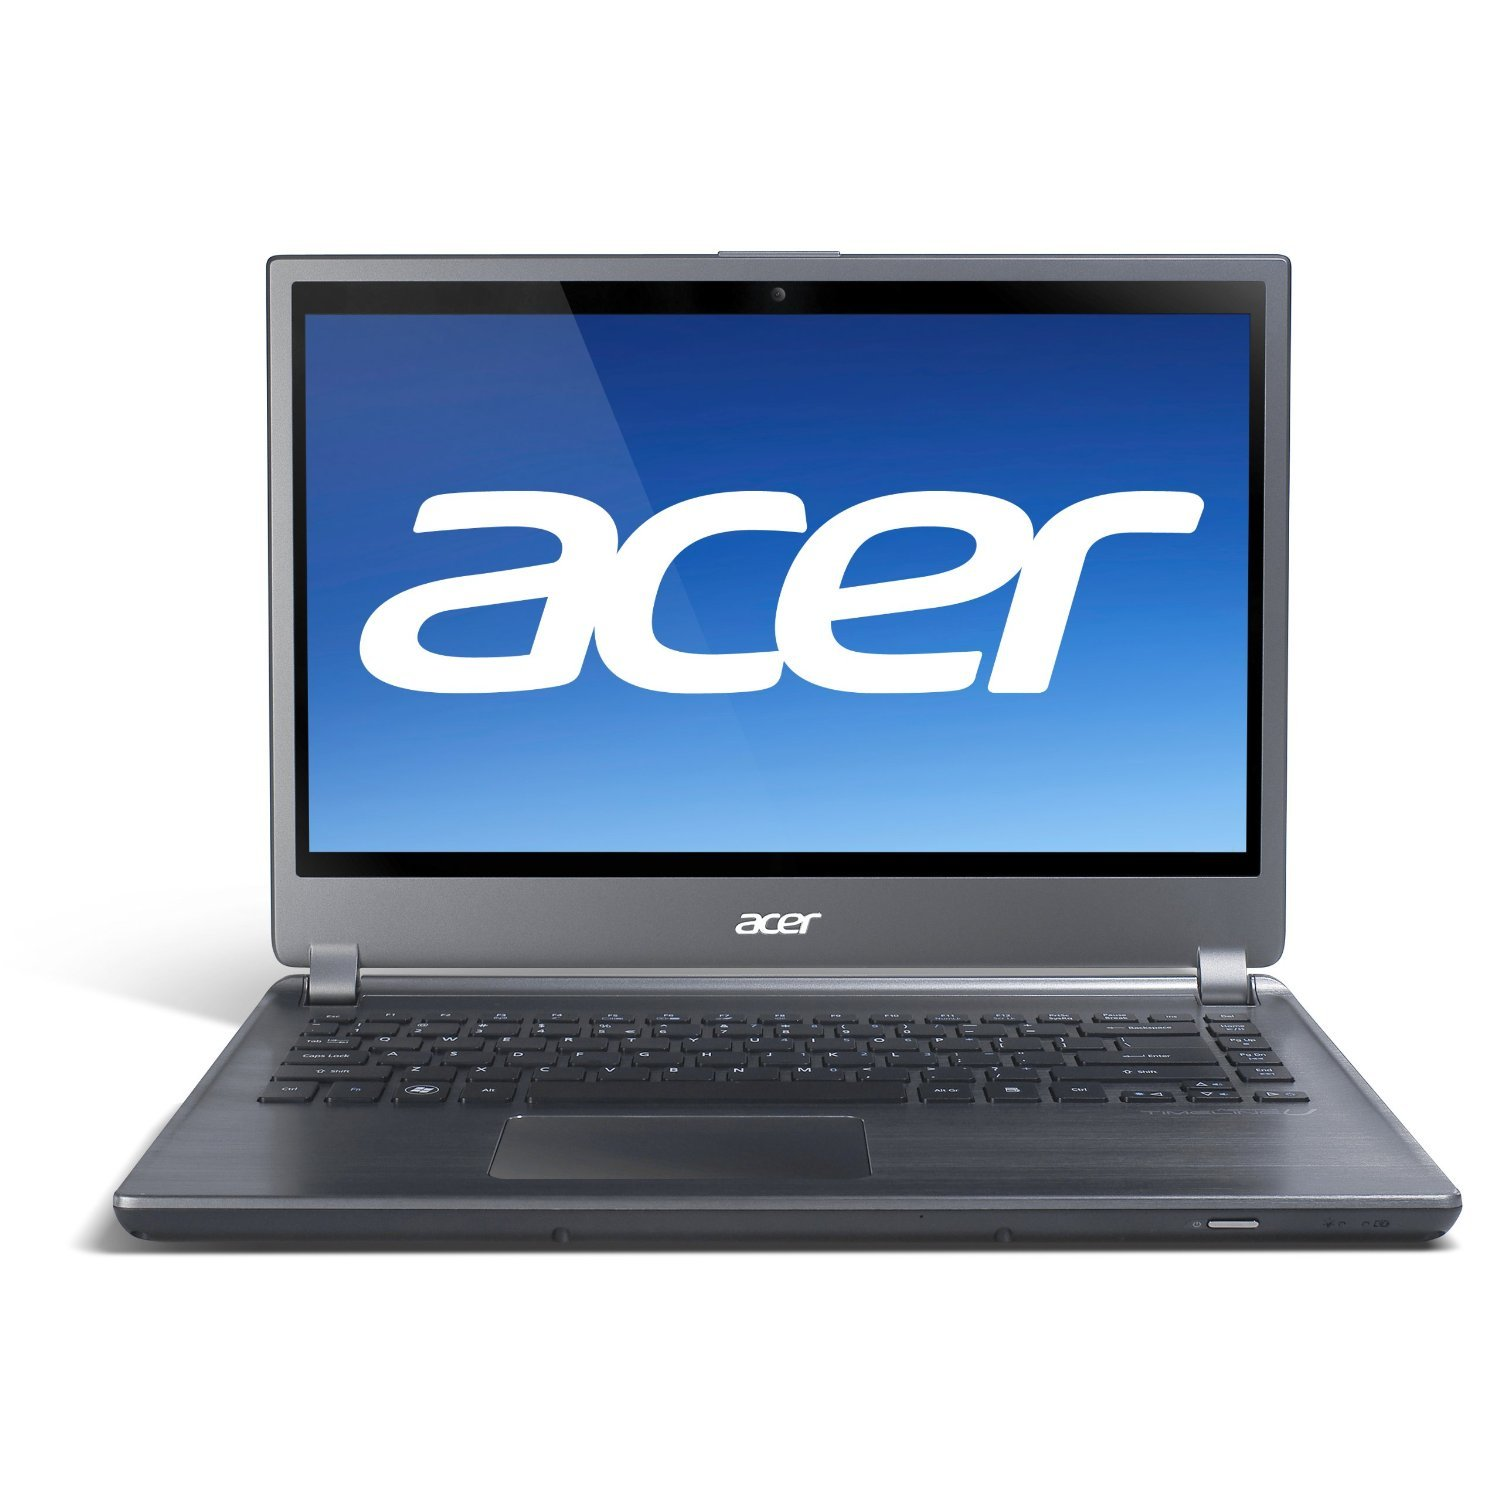 ACER ASPIRE M5-481TG SYNAPTICS TOUCHPAD DRIVERS WINDOWS